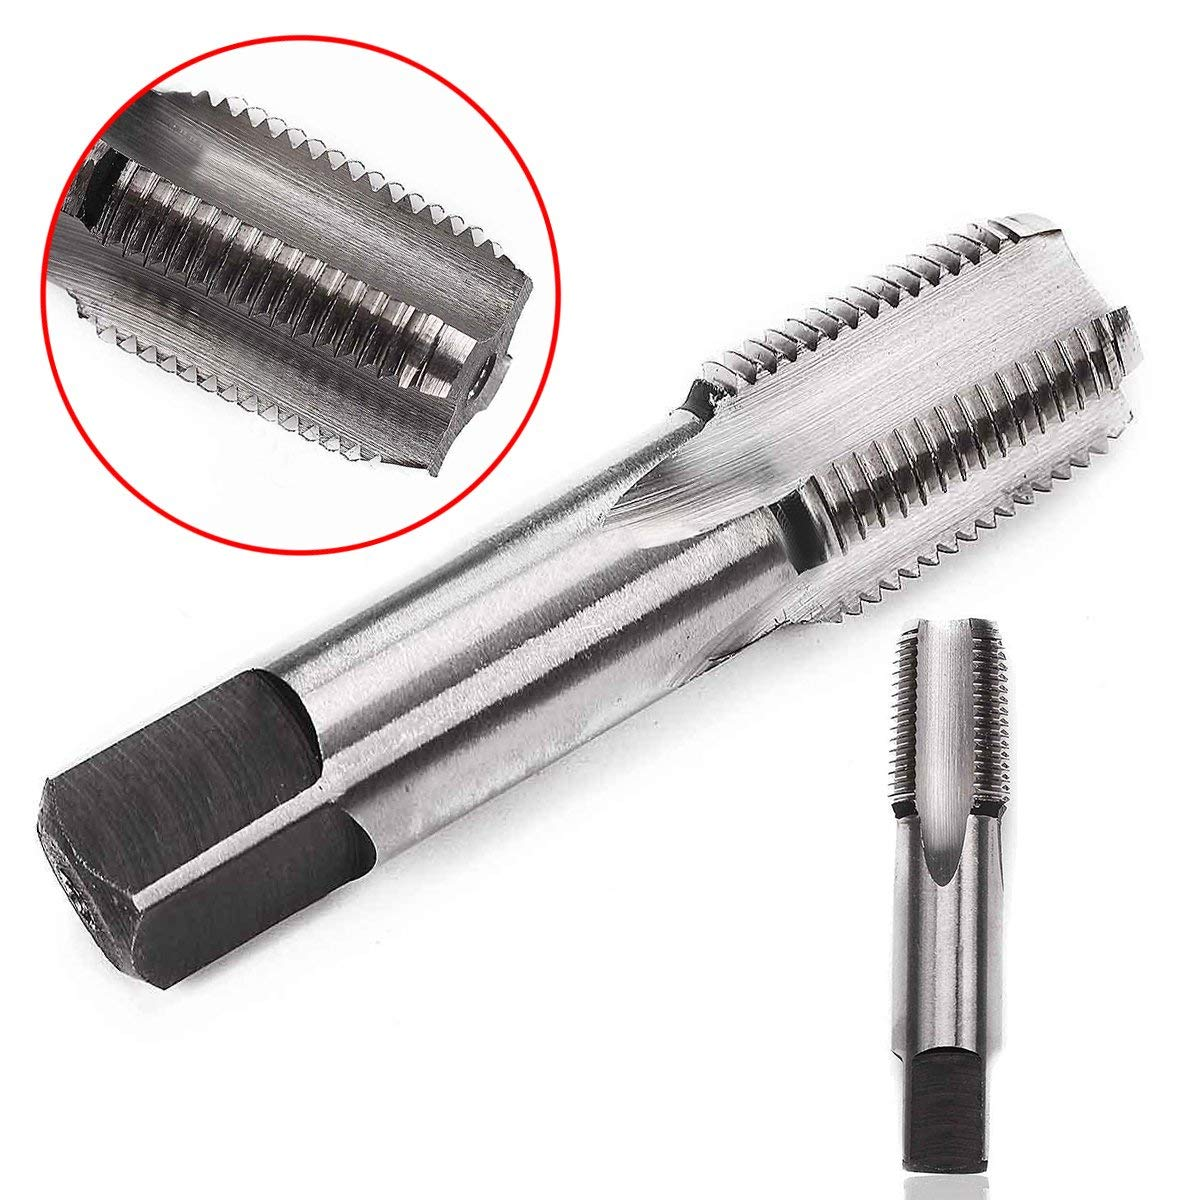 """WILLAI 1pc Mayitr Smooth High Hardness 3/8""""-18 NPT Screw Tap Durable High Speed Steel HSS Thread Cutting Taper Pipe Taps 7016mm"""